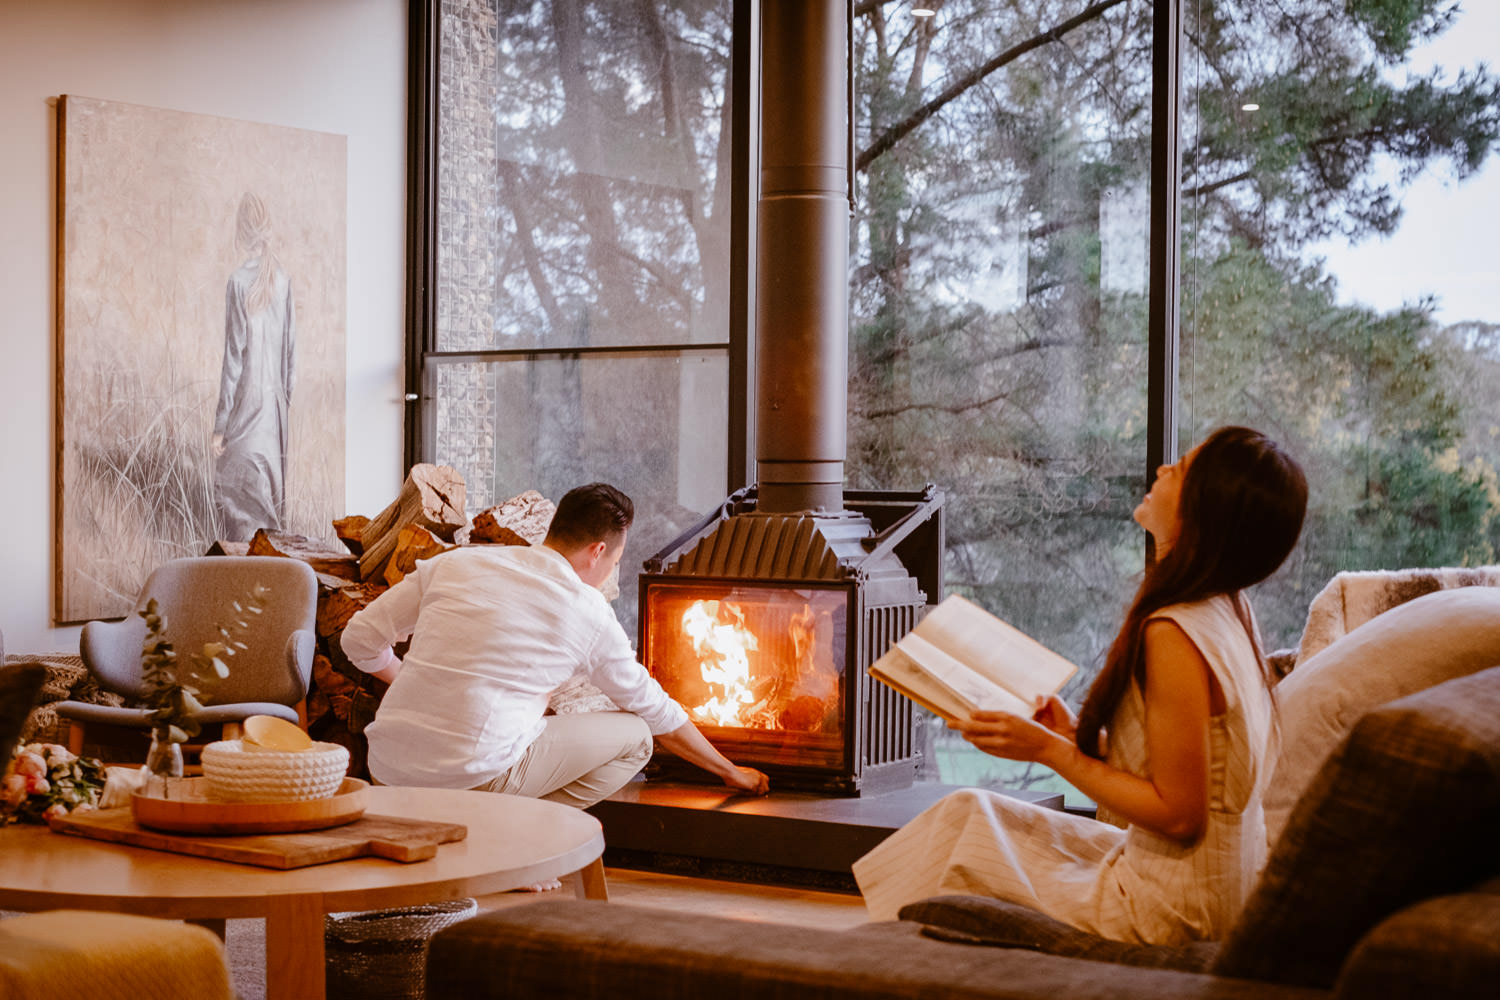 Guy lights a fire in the fireplace while the girl reads a book (Multi-day Overseas Prewedding Adventure in Melbourne)